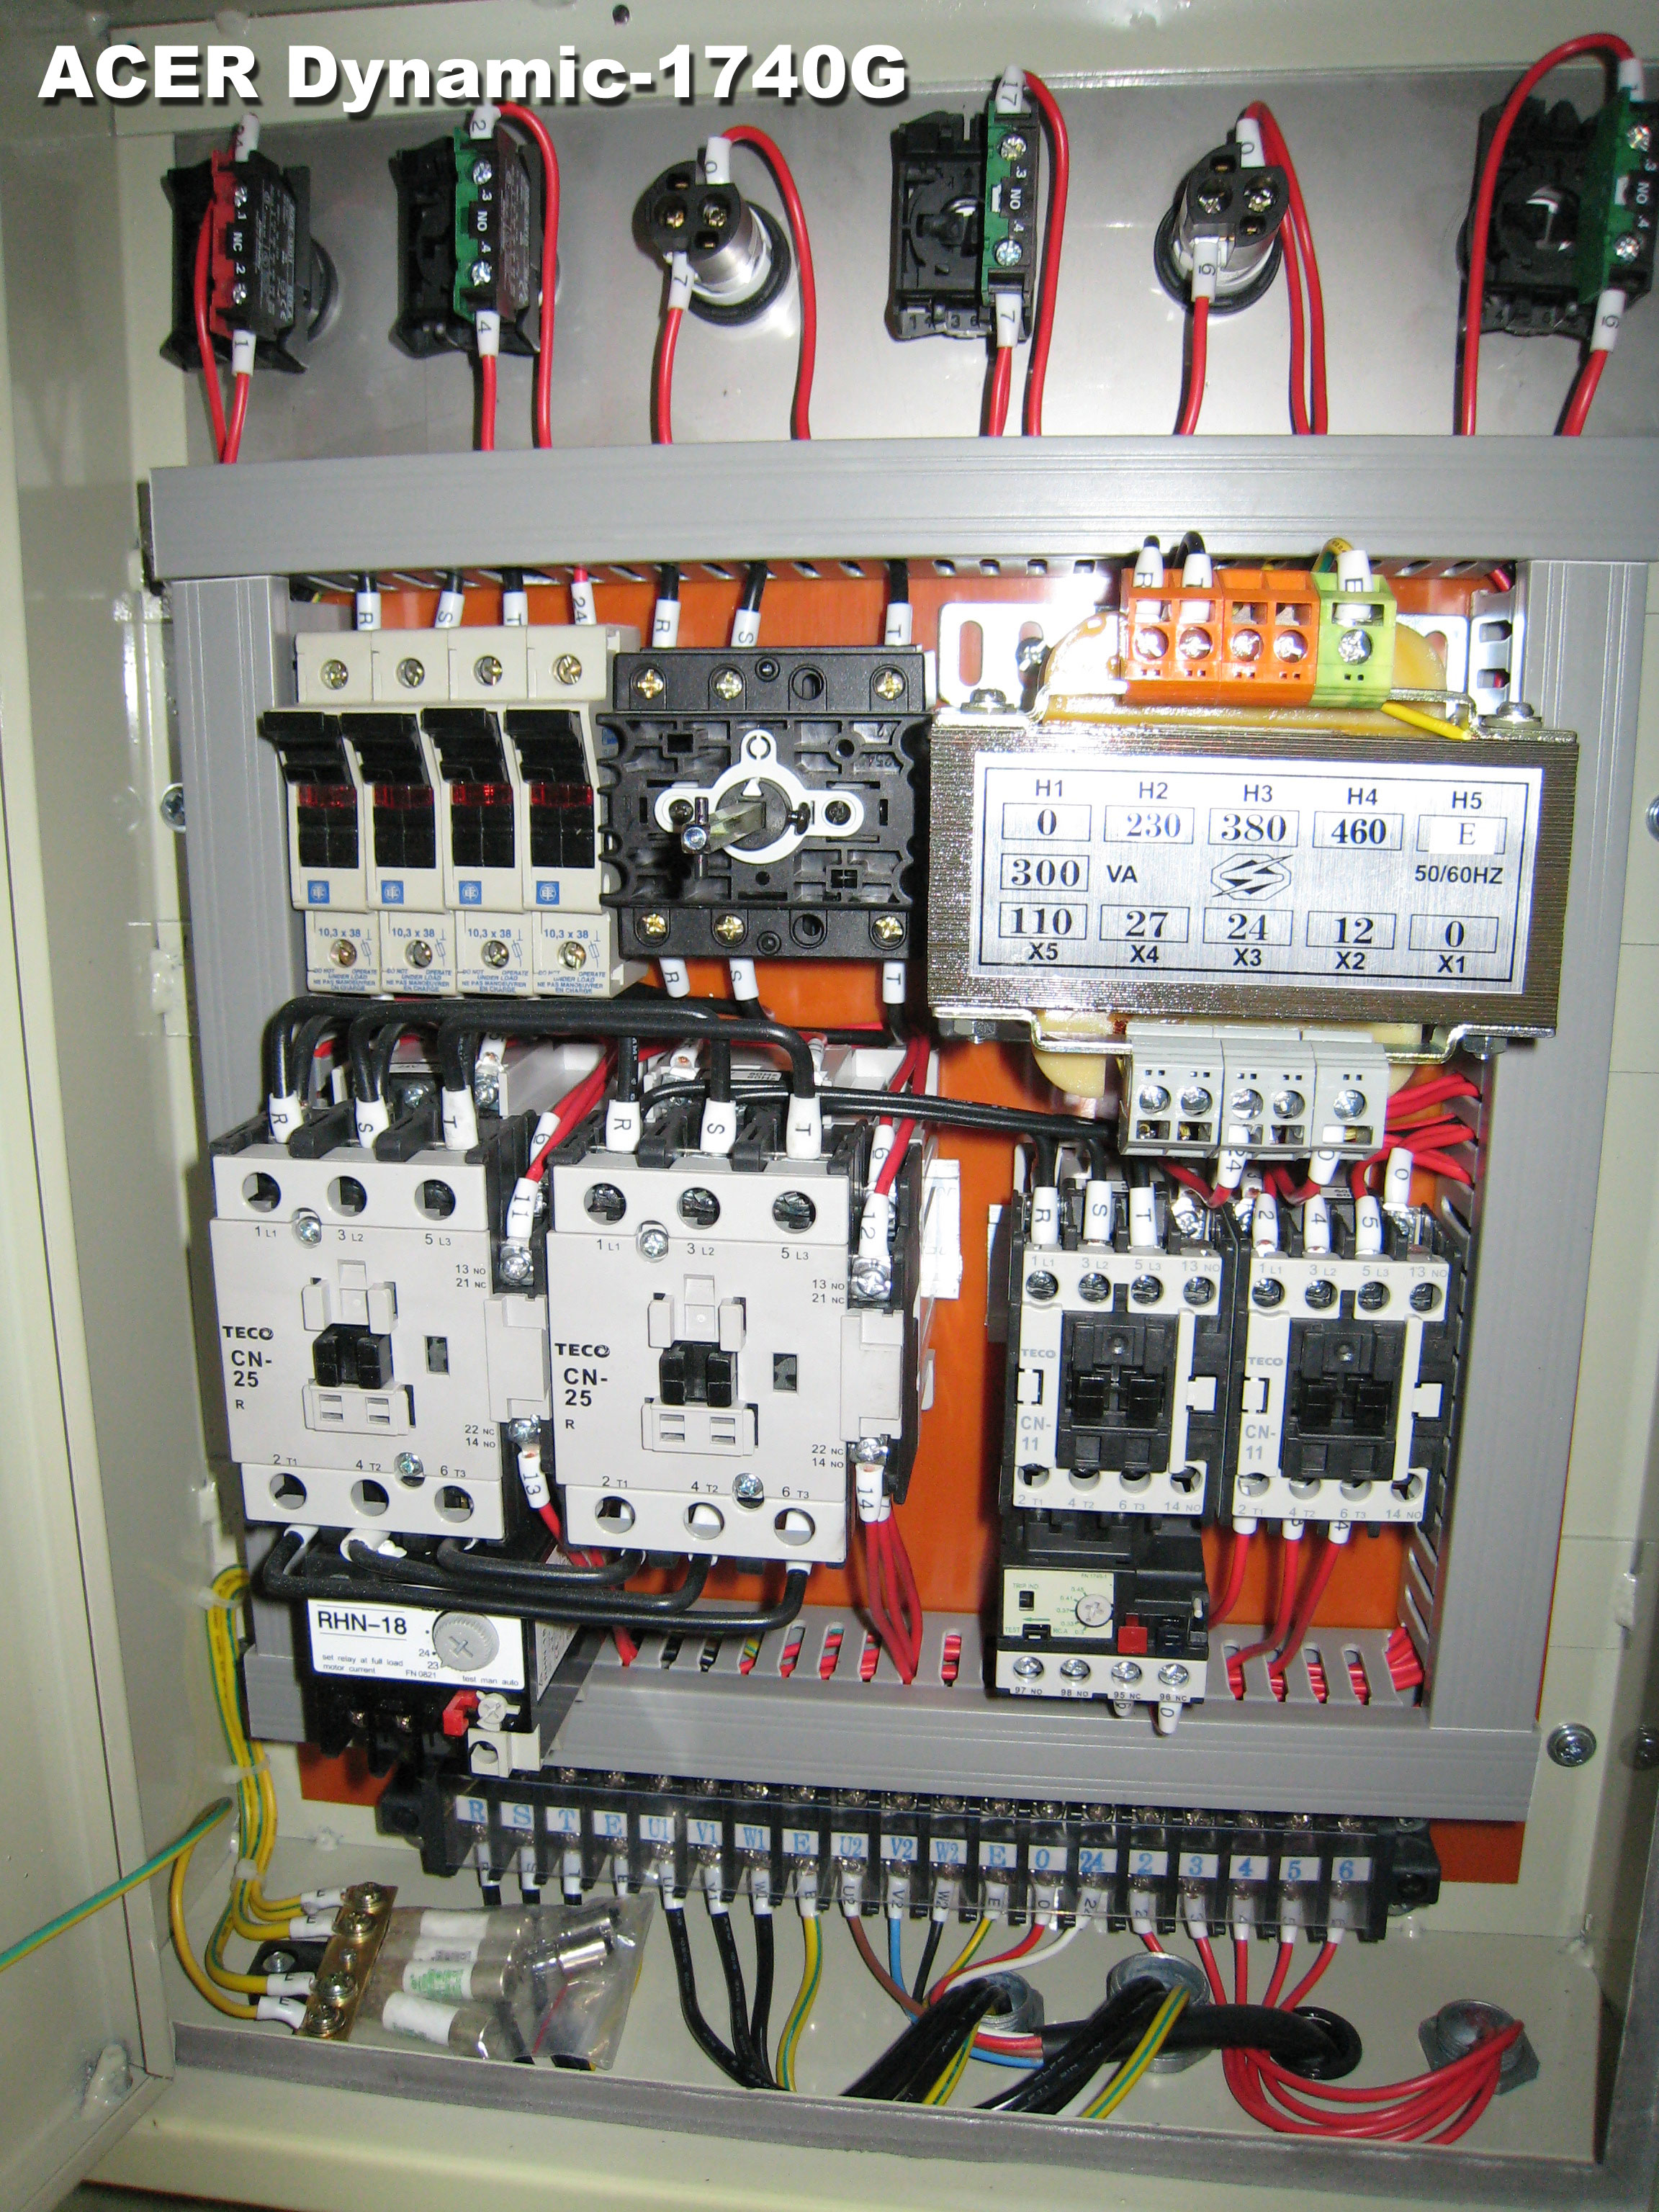 Electrical Control Panel Wiring Diagram from aceronline.net